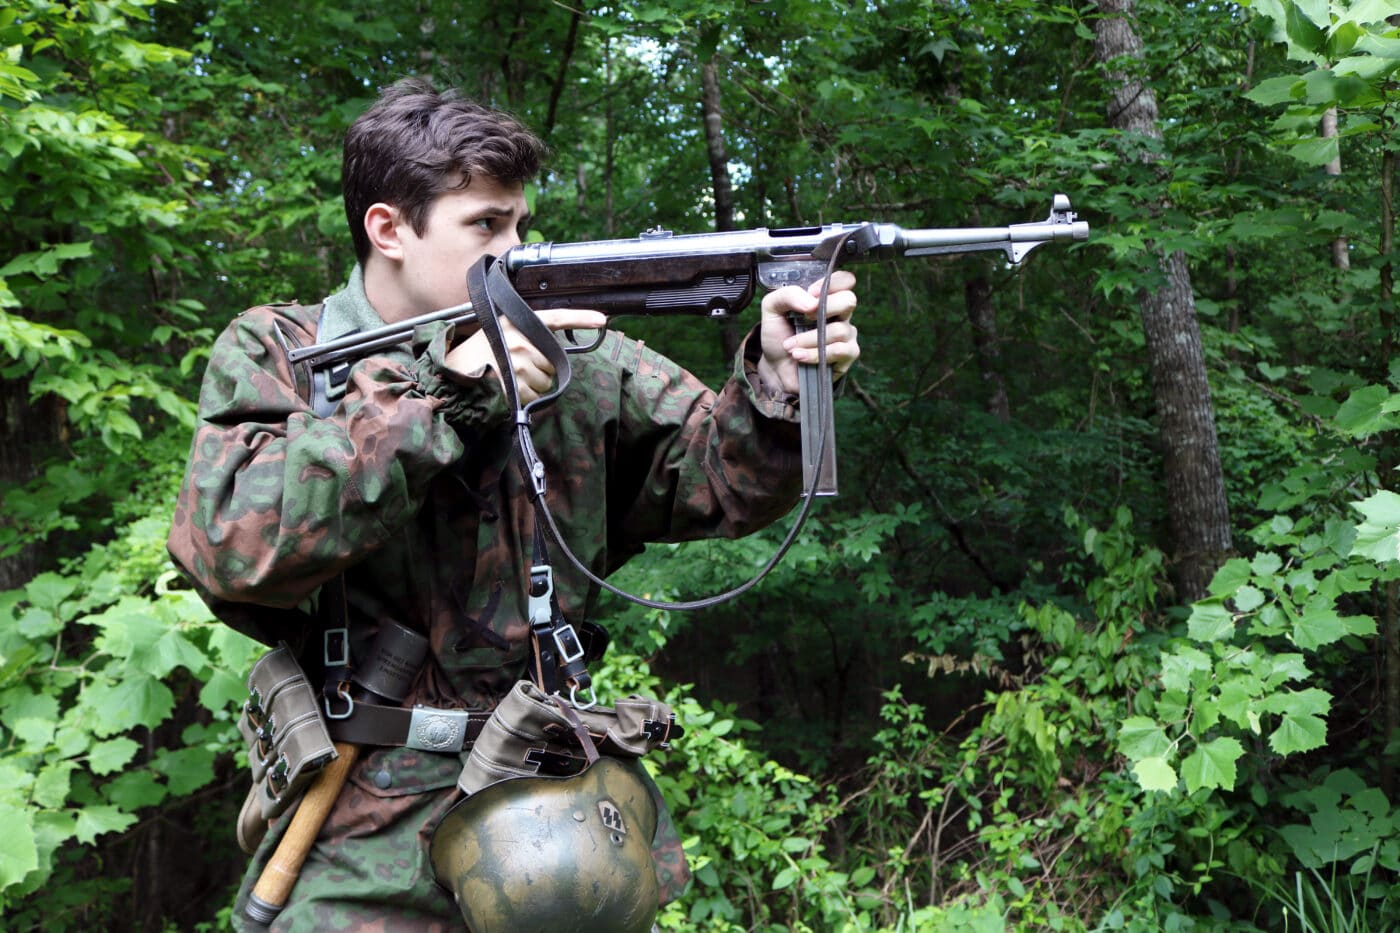 Man dressed as German SS soldier shooting an MP40 SMG